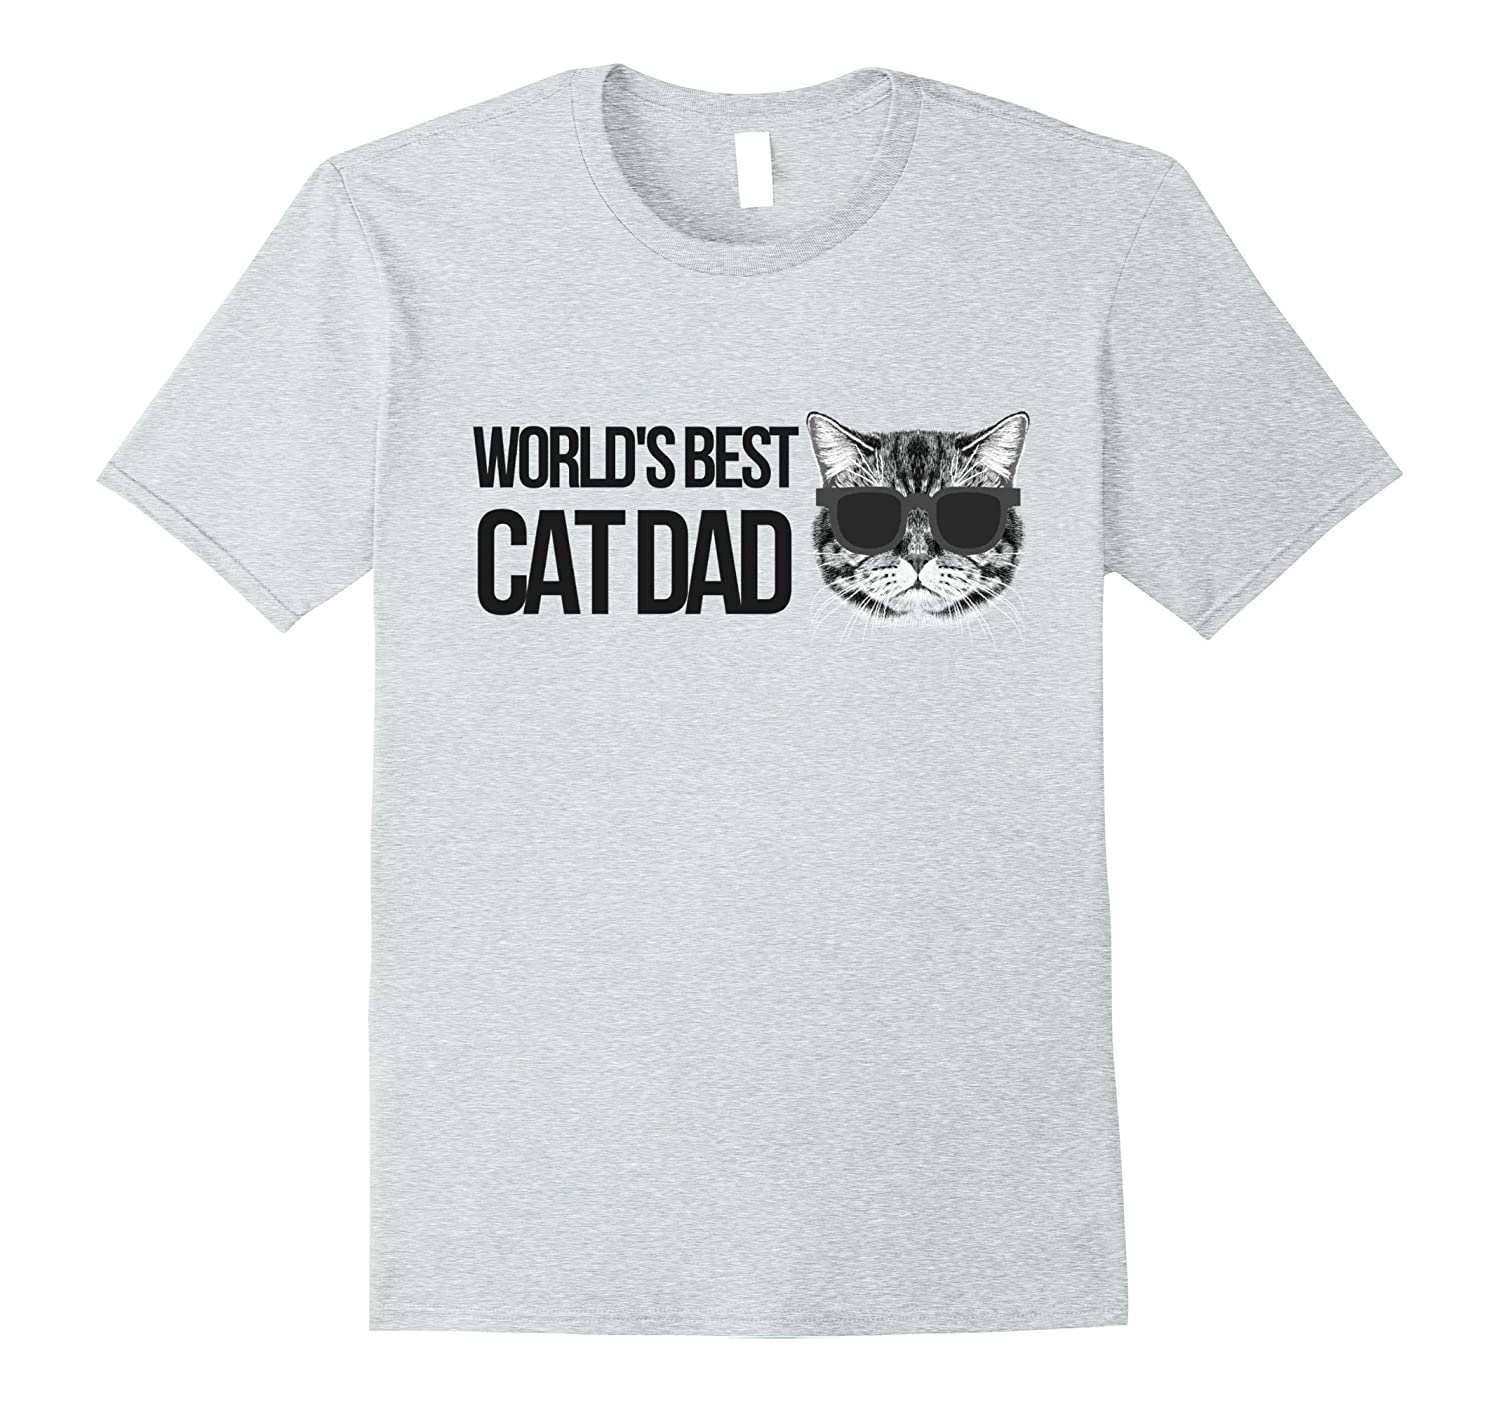 9be76b2d Cat Dad Tee - World's Best Cat Dad Graphic Tshirt-ANZ ⋆ Anztshirt